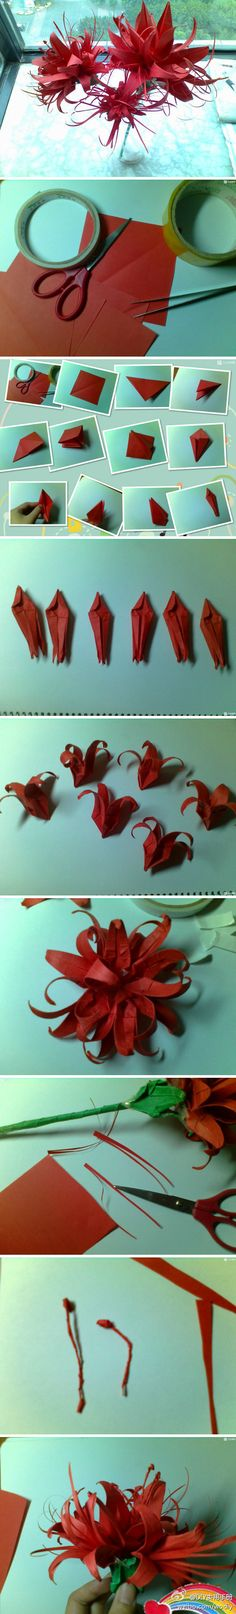 diy ideas, home craft ideas, craft flowers, diy crafts, flower crafts, paper flowers, flower tutorial, paper crafts, origami flowers